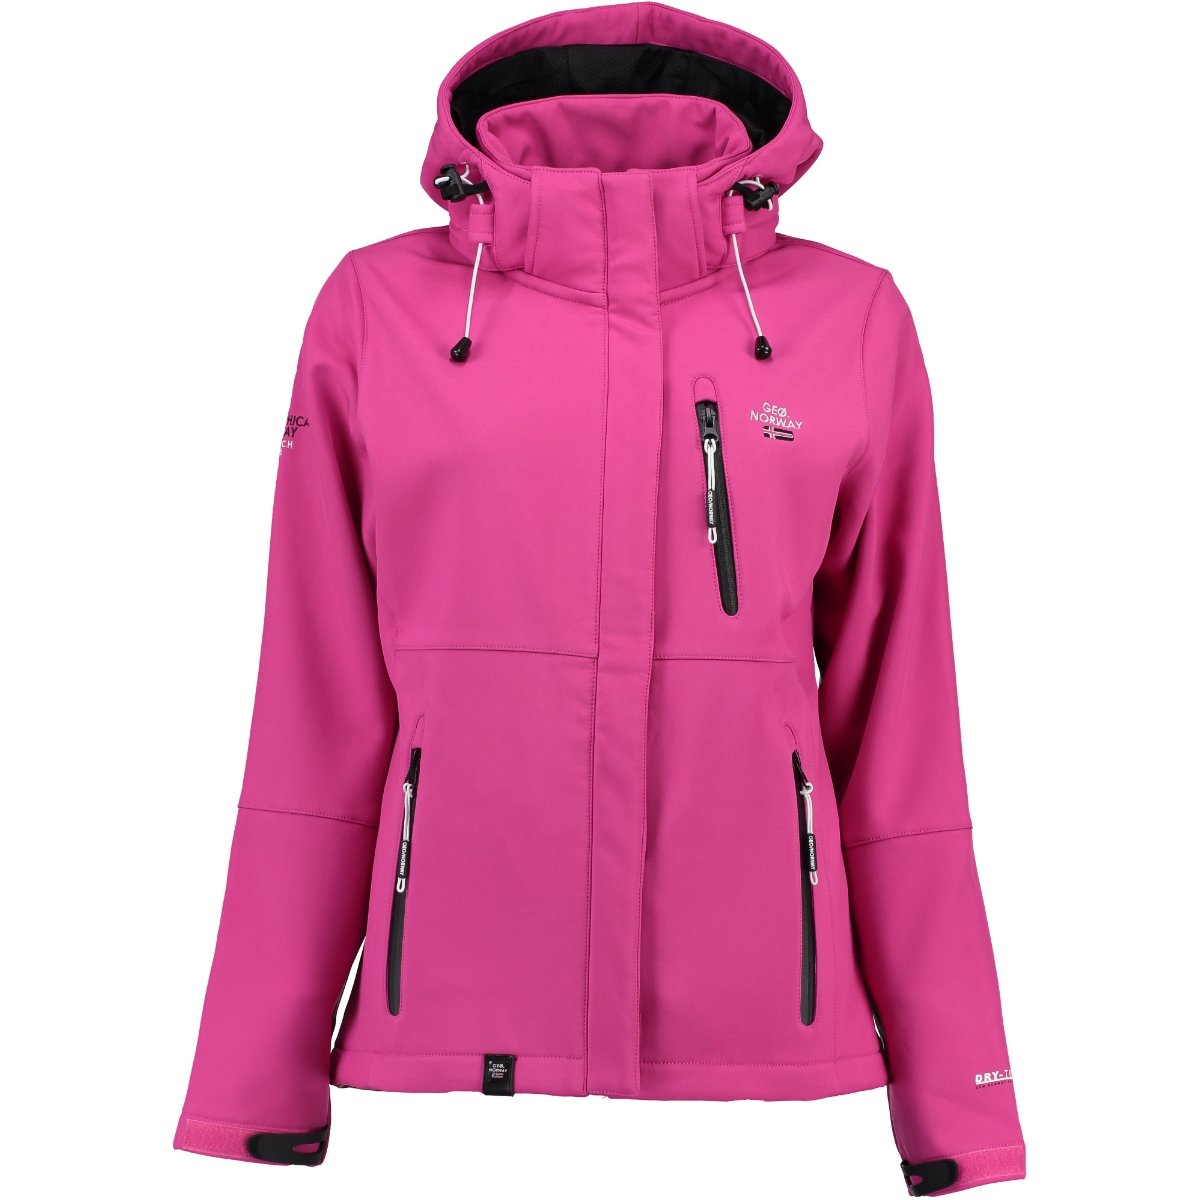 TALLA L. Geographical Norway Tehouda Lady Assort A Chaqueta Deportiva para Mujer